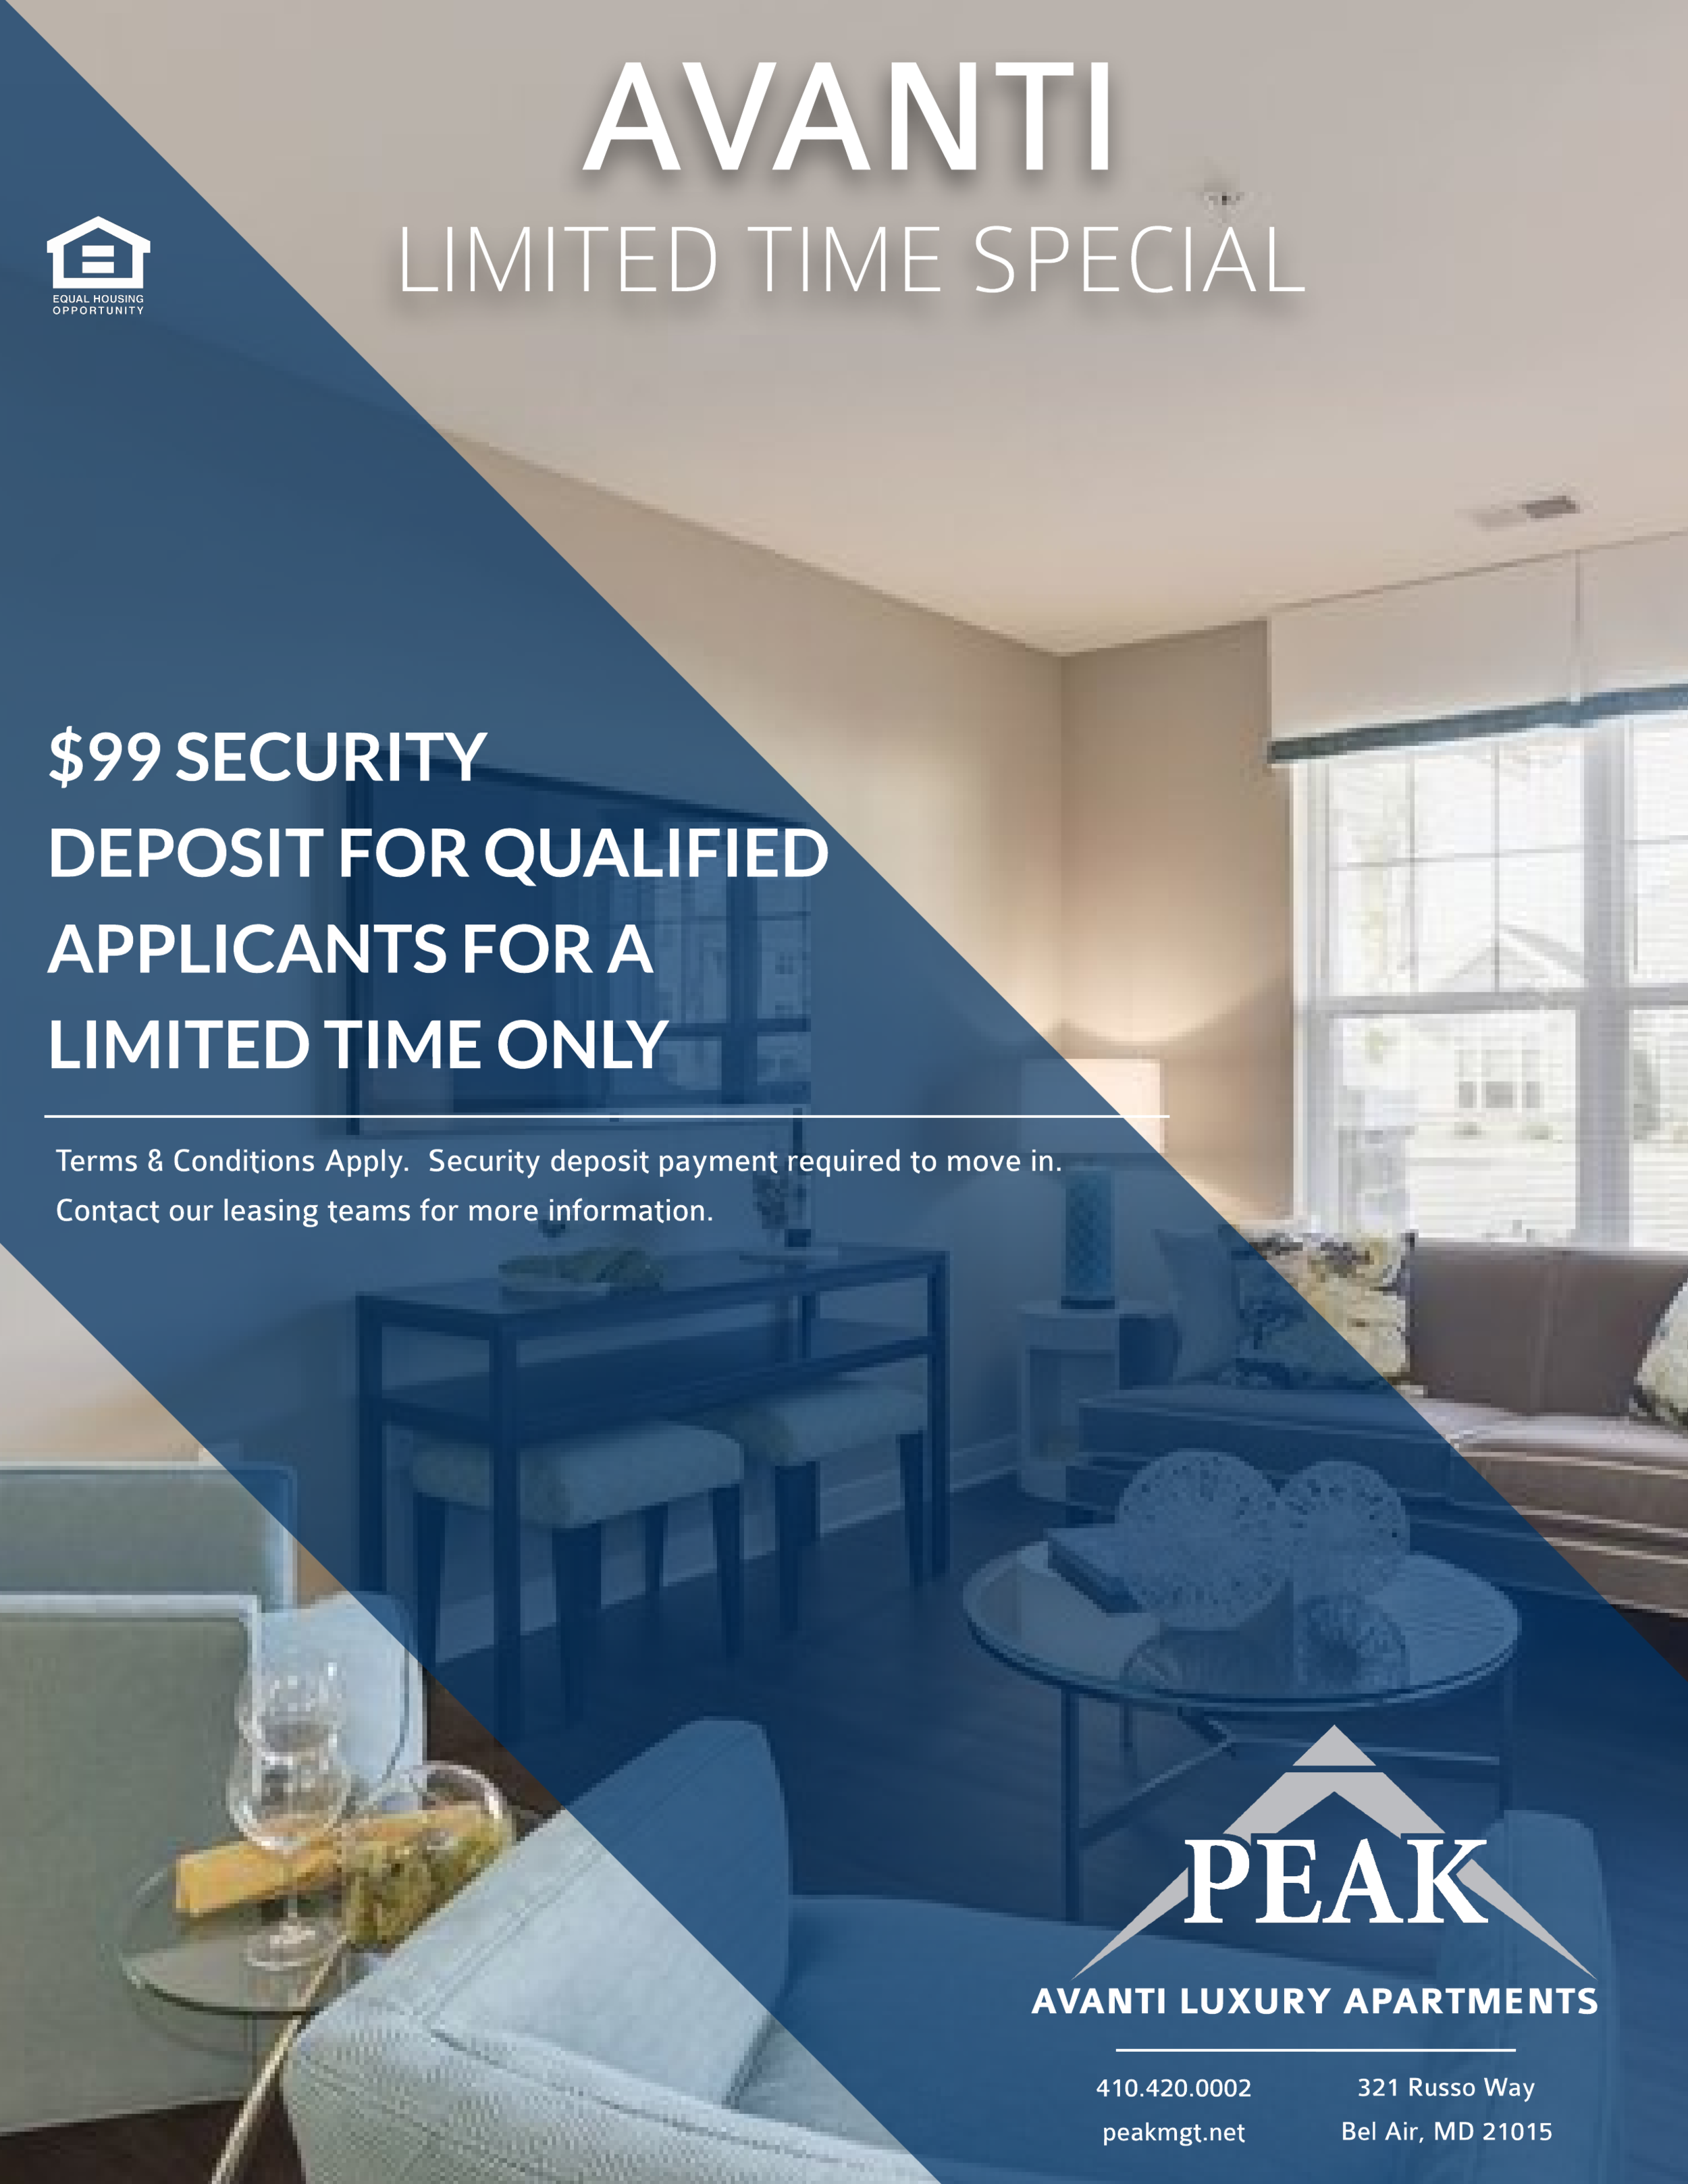 Avanti Luxury Apartments in Bel Air, MD February Rent Promotion